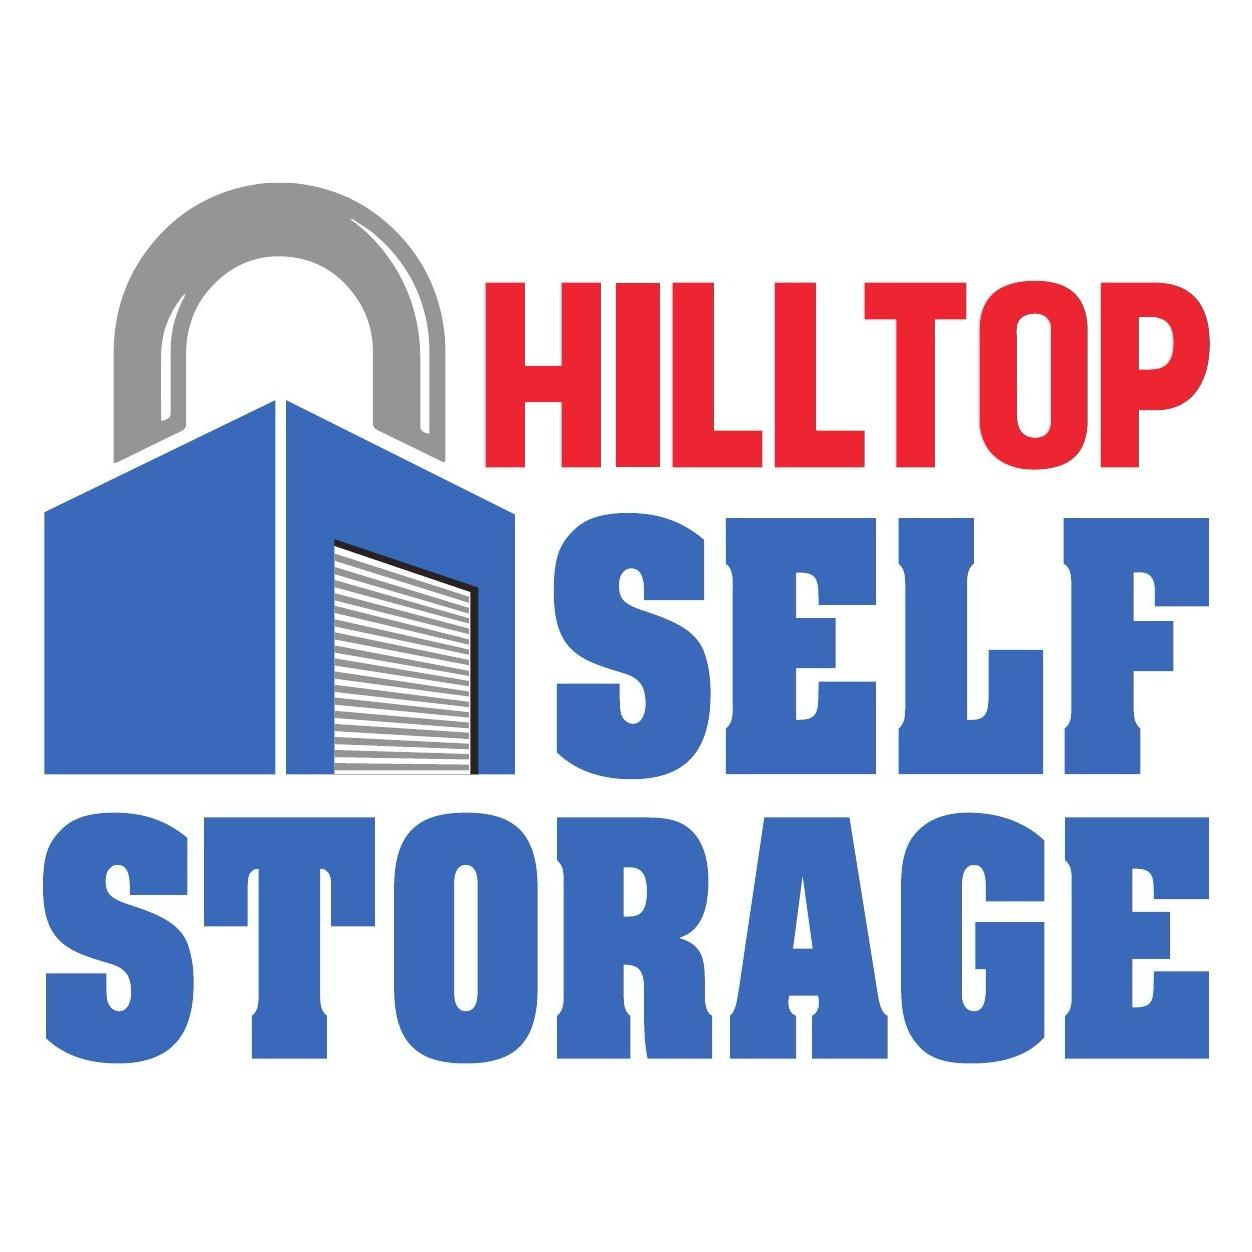 Hilltop Self Storage - New Oxford, PA - Self-Storage